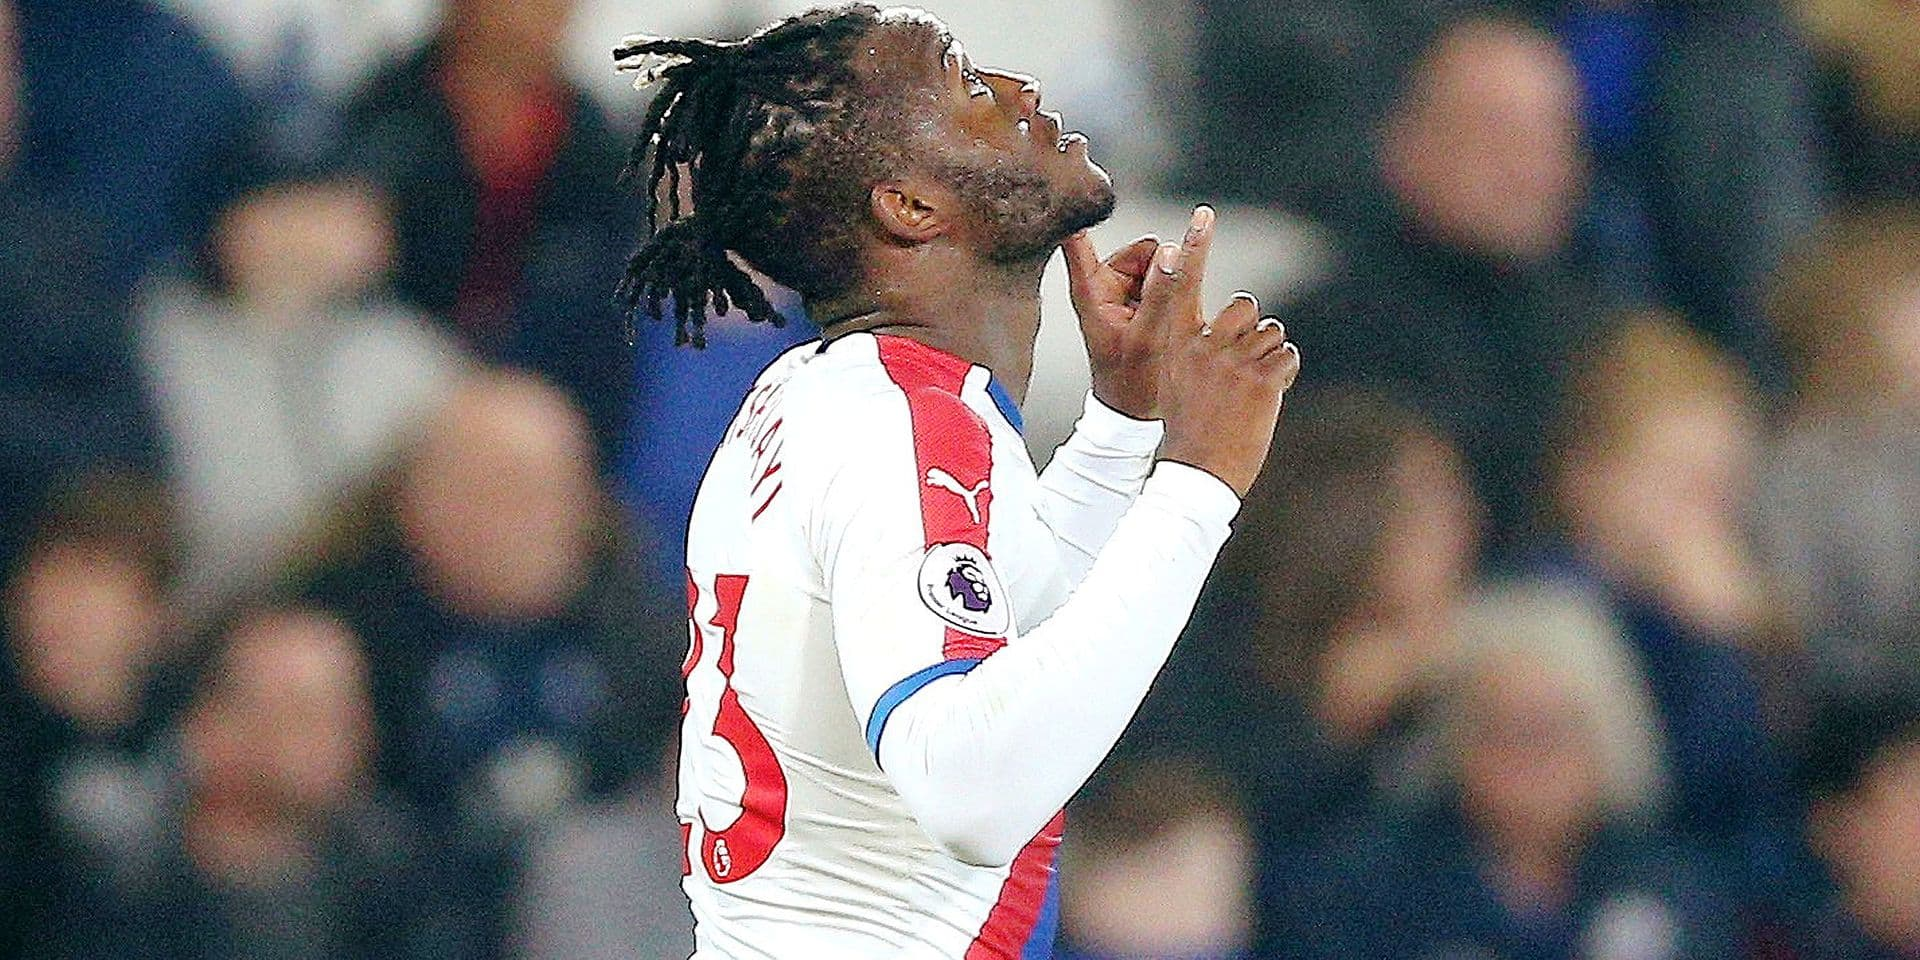 Crystal Palace's Michy Batshuayi celebrates scoring his sides first goal of the game against Leicester City during their English Premier League soccer match at the King Power Stadium in Leicester,England, Saturday Feb. 23, 2019. (Nigel French/PA via AP)